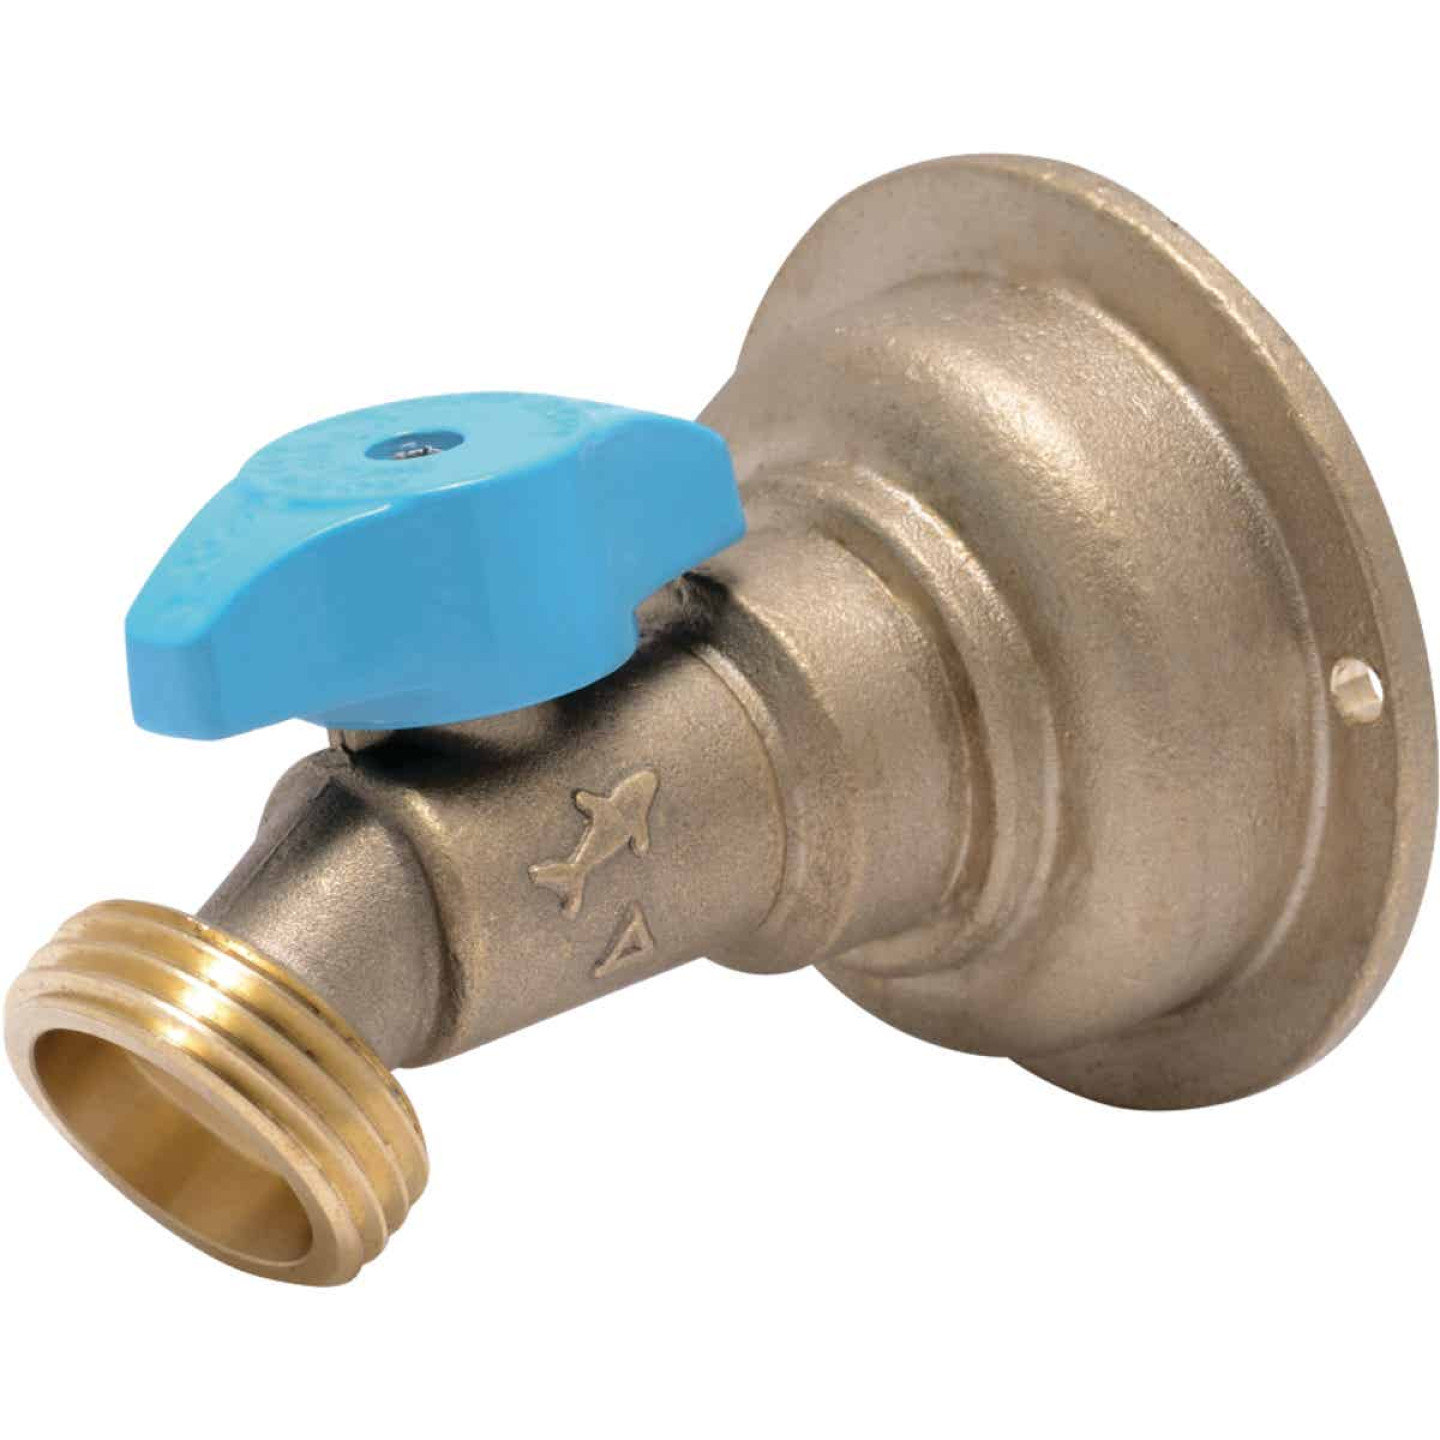 Sharkbite 3/4 In. x 3/4 In. MHT Quarter Turn Brass No Kink 45 Degree Hose Bibb Image 1